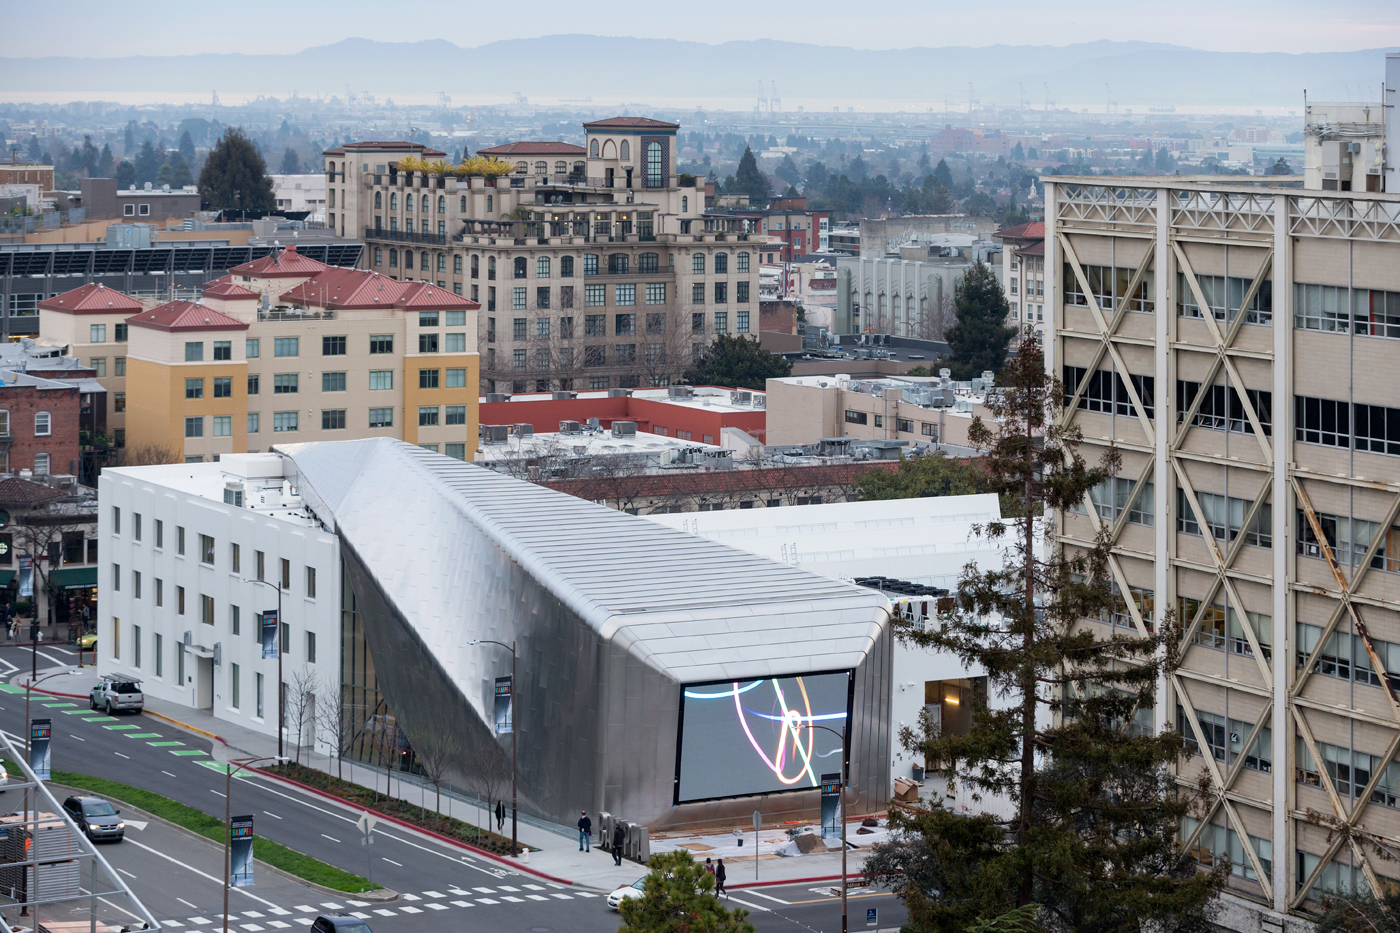 Foto Iwan Baan. Courtesy of Diller Scofidio + Renfro; EHDD; and UC Berkeley Art Museum and Pacific Film Archive (BAMPFA)